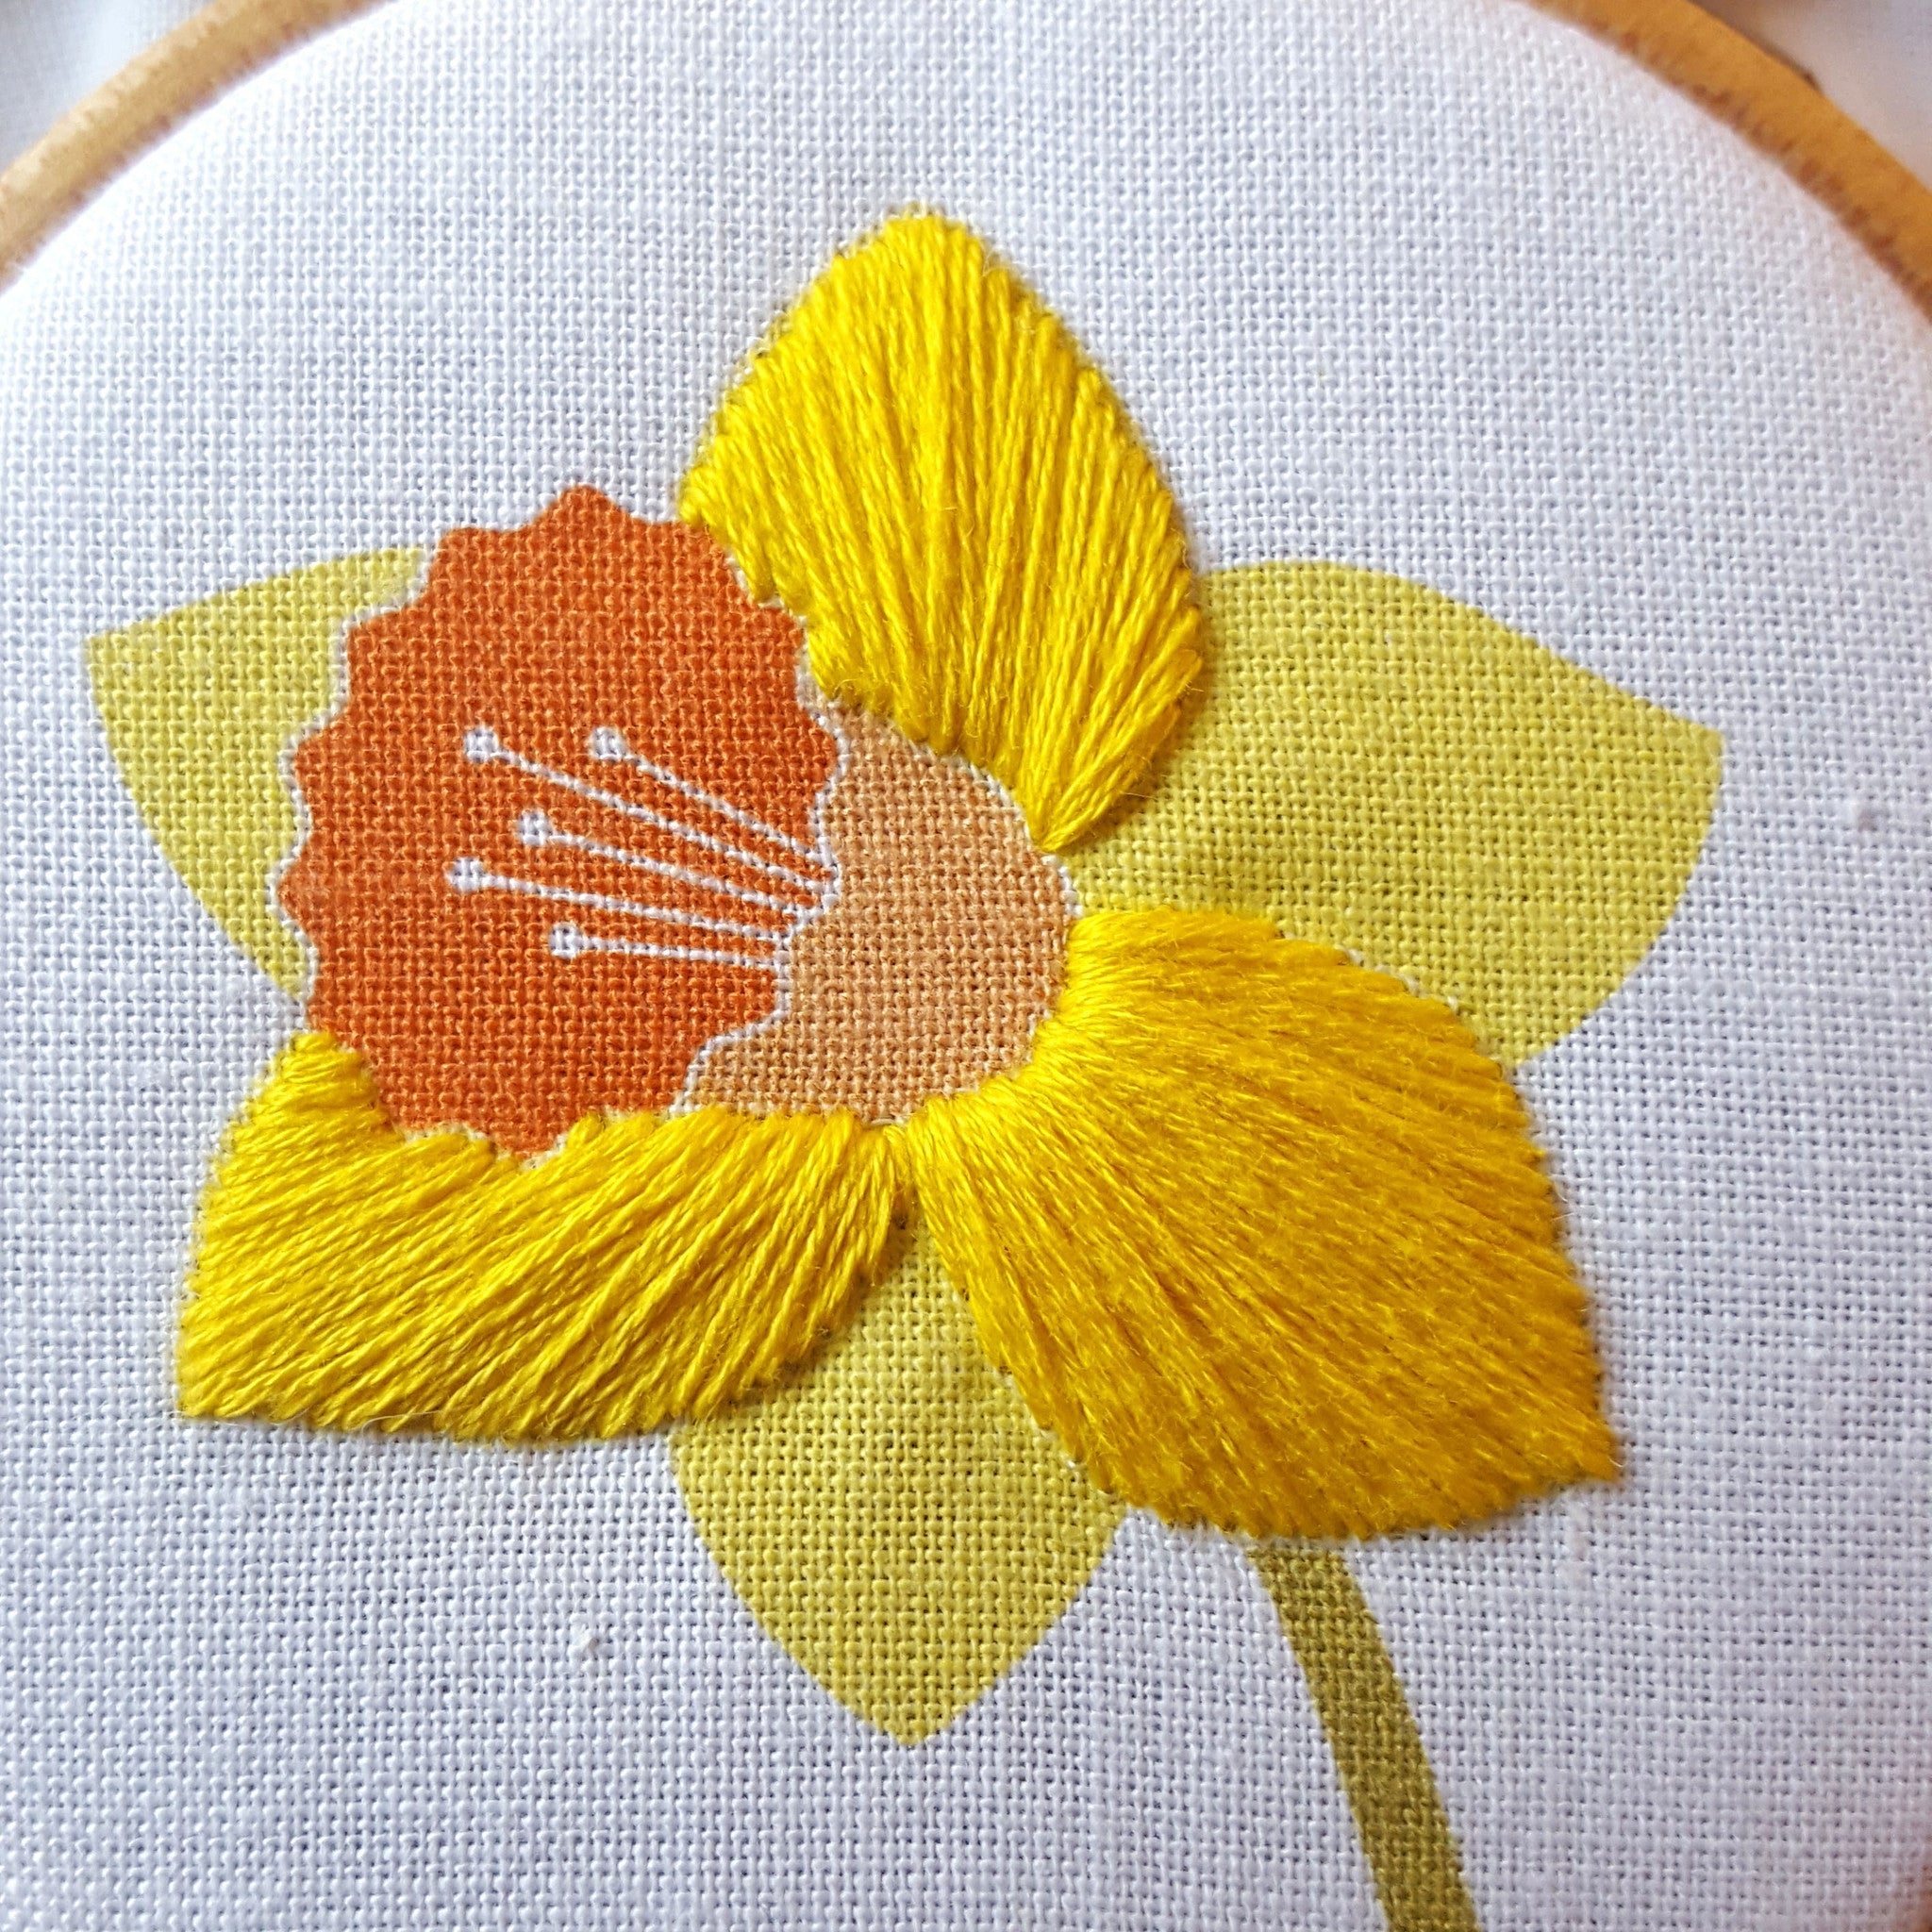 free daffodil embroidery pattern download u2013 ohsewbootiful